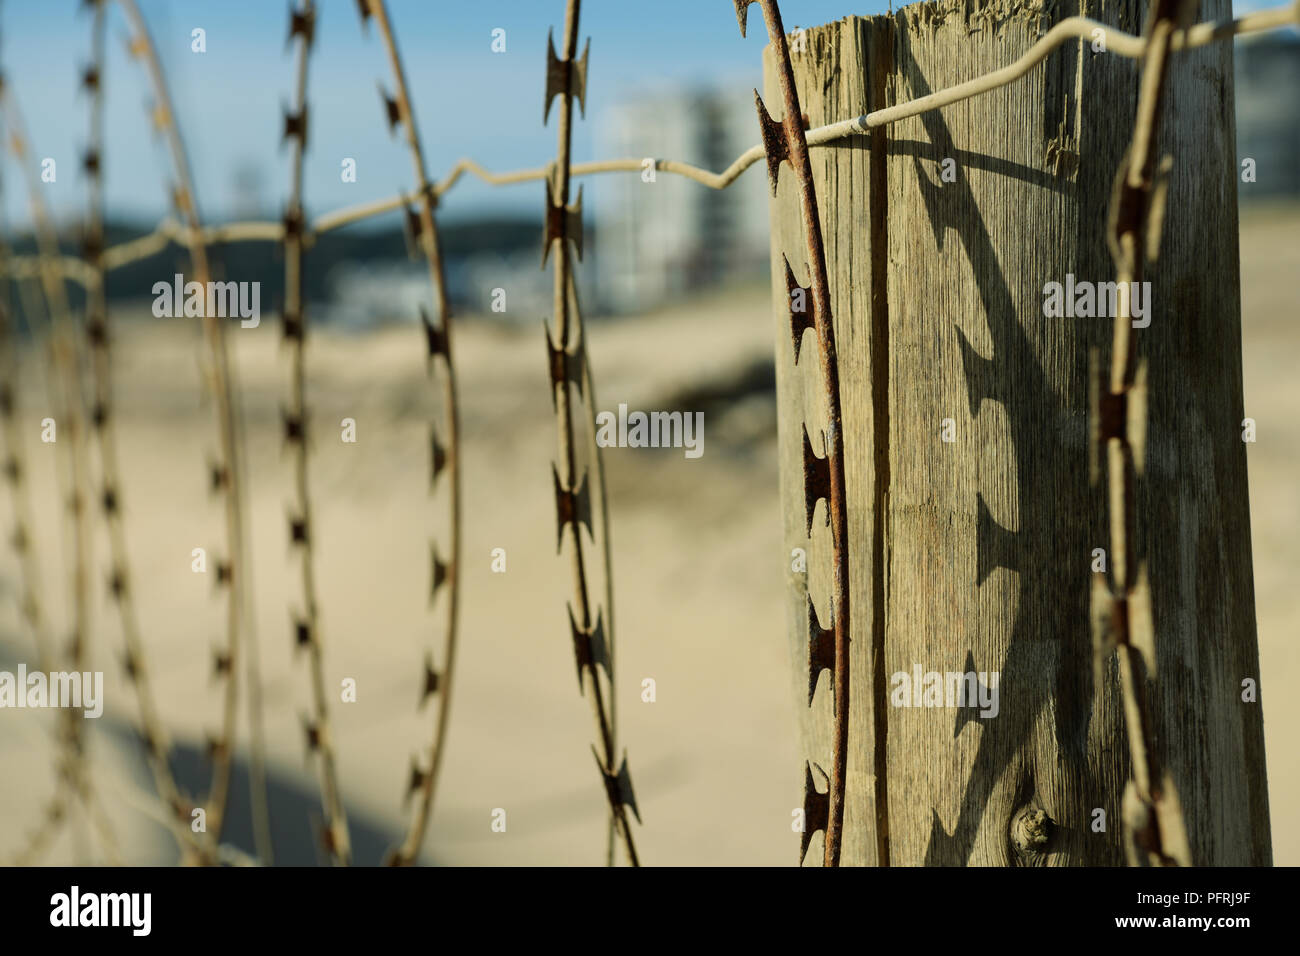 Close-up, detail, weathered rusting concertina barbed wire fence, construction site, barbs casting shadow, wooden fence post, abstract, background - Stock Image